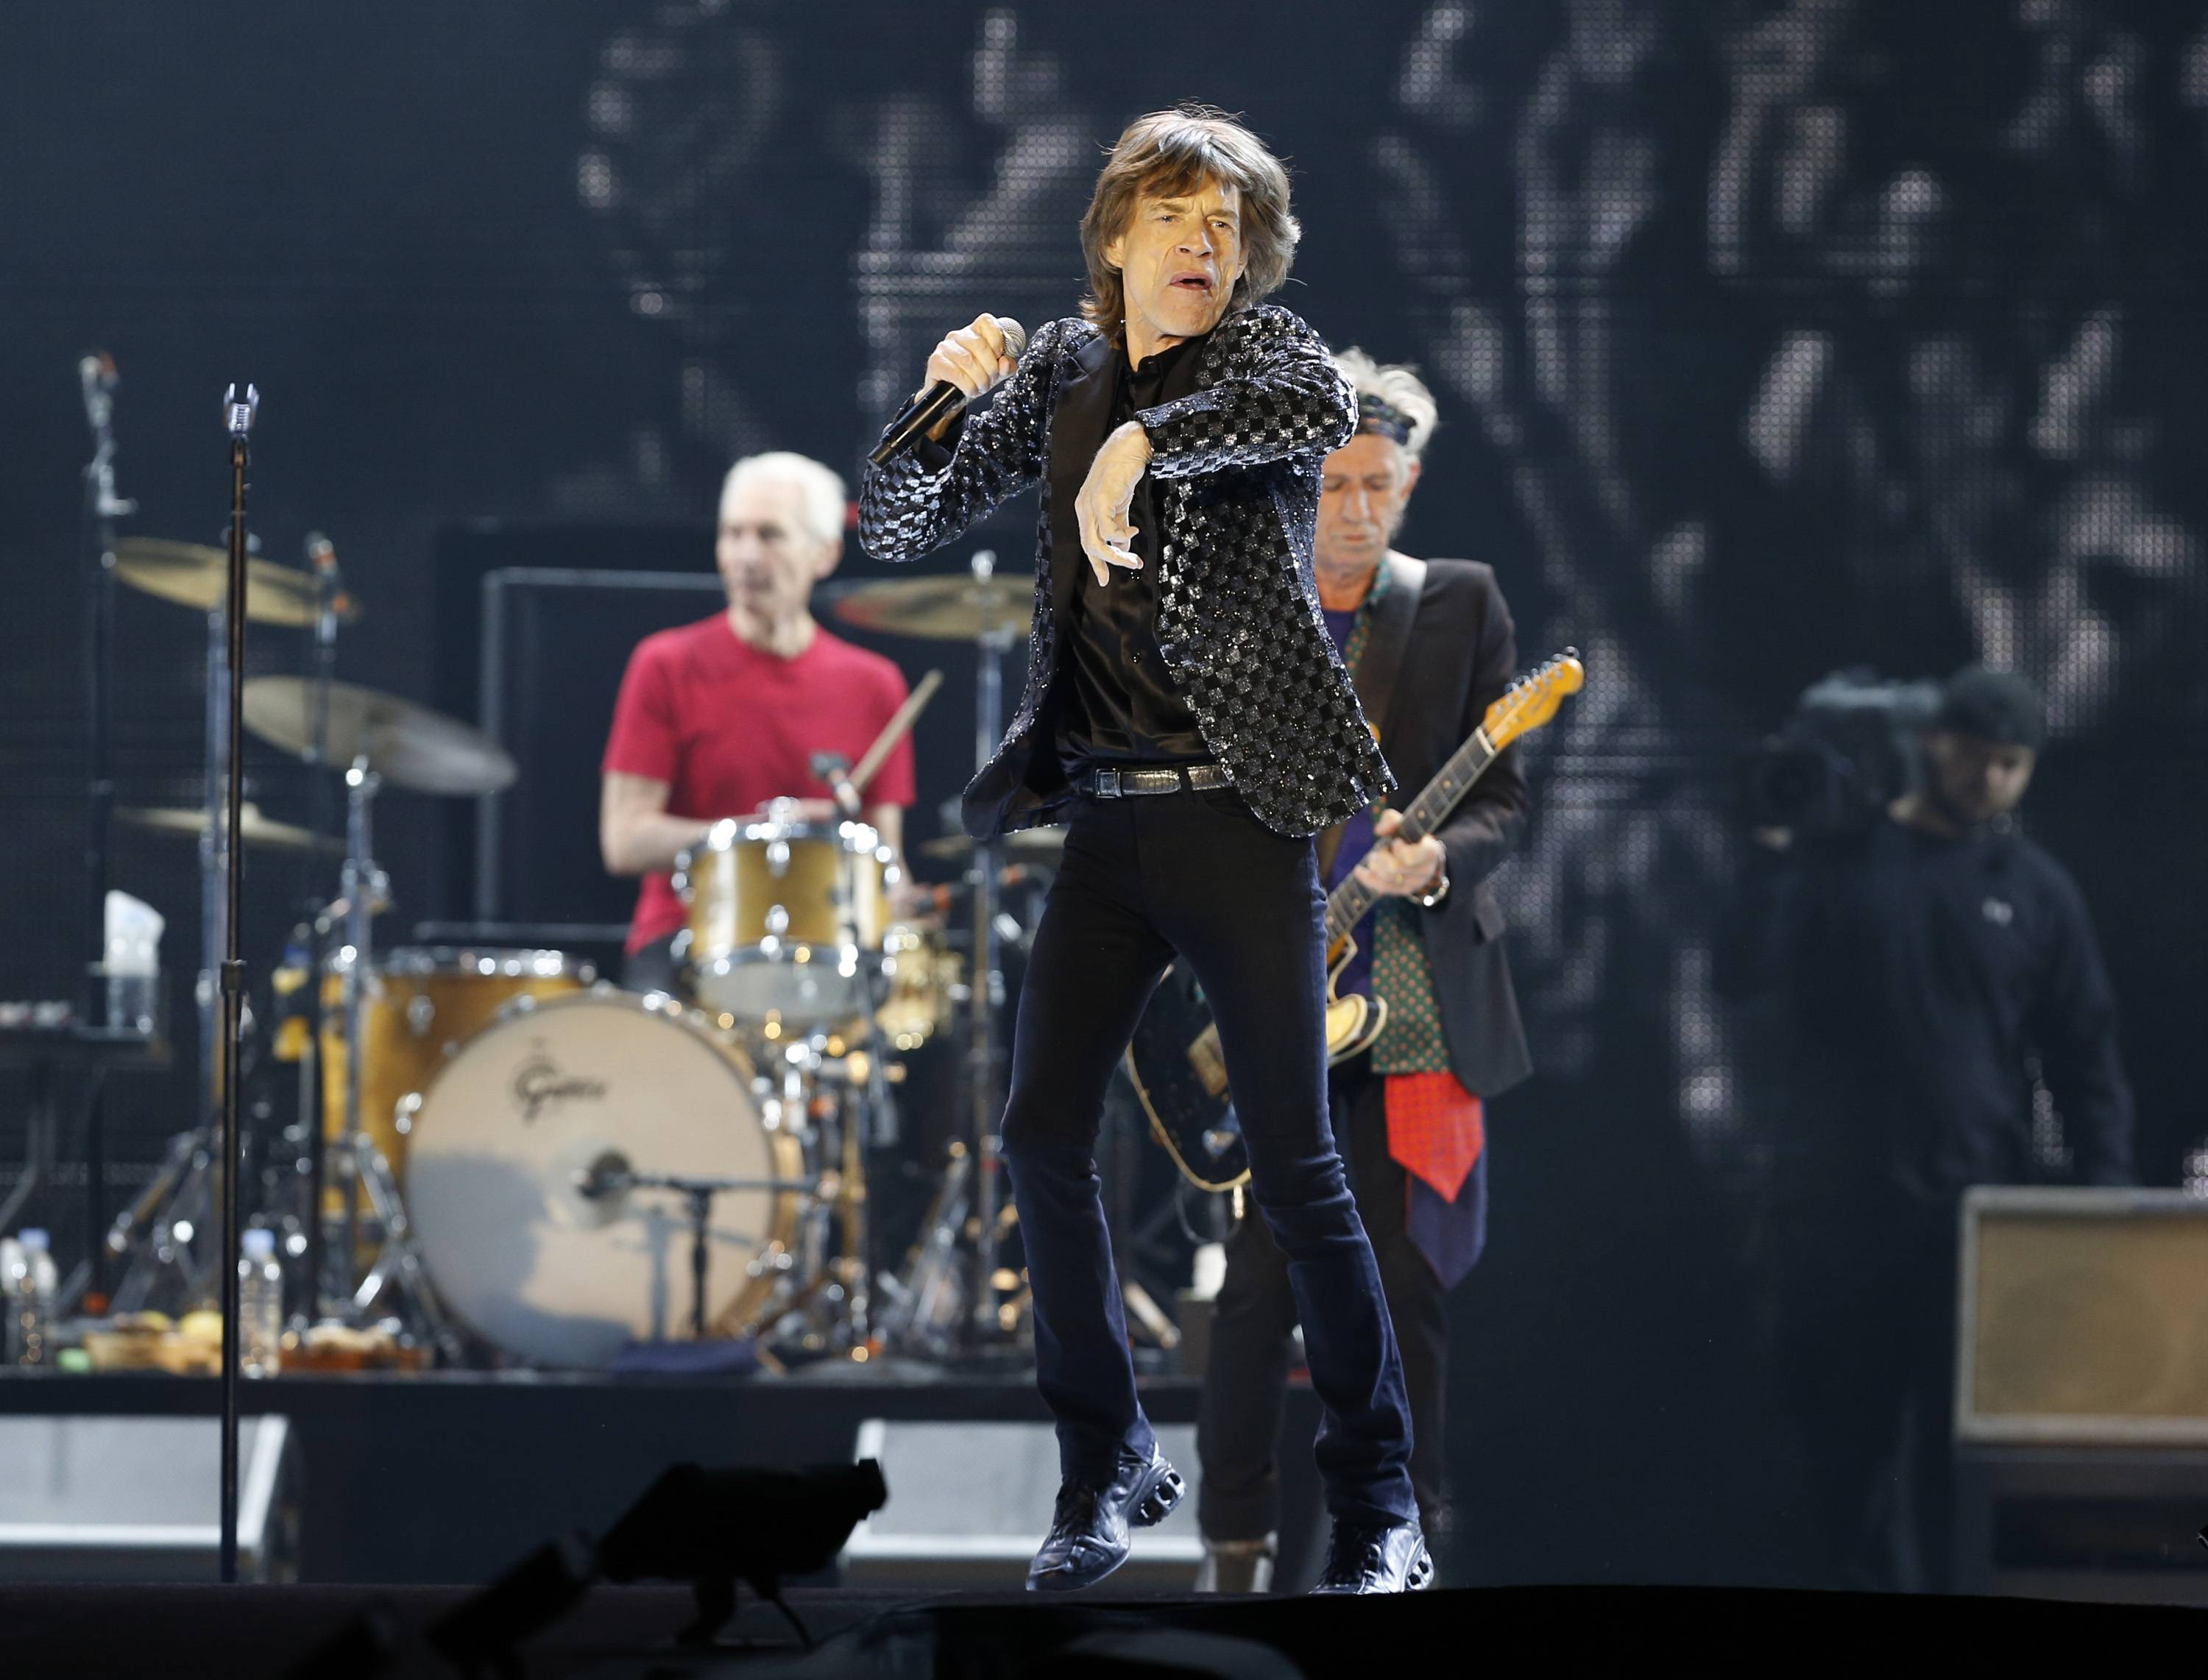 The Rolling Stones have called off their tour dates in Australia and New Zealand following the death of Mick Jagger's girlfriend and designer L'Wren Scott on Monday.